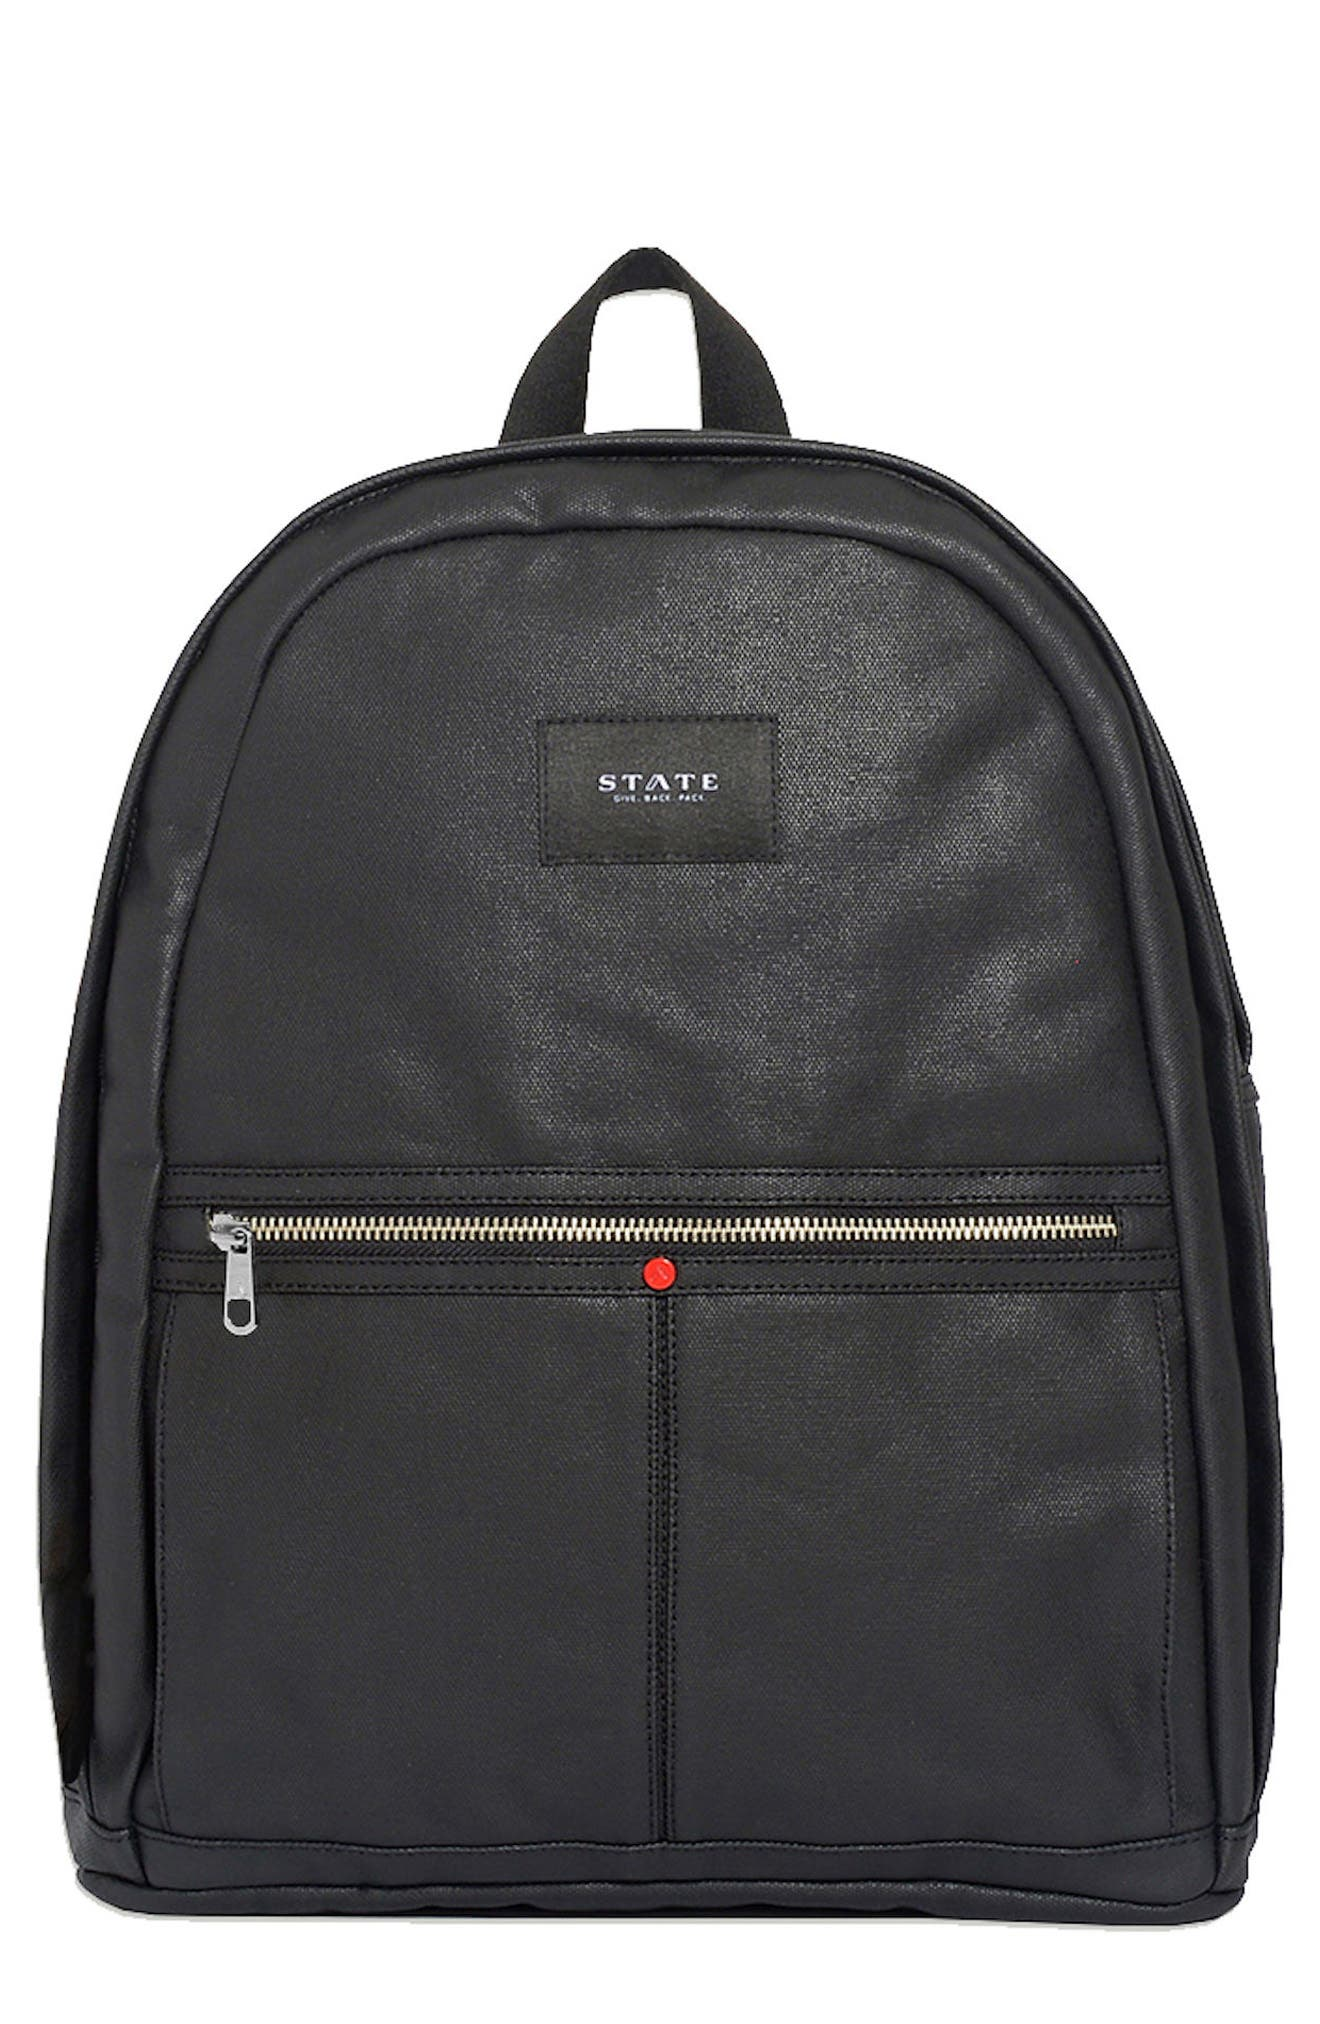 Greenpoint Kent Backpack,                         Main,                         color, Black